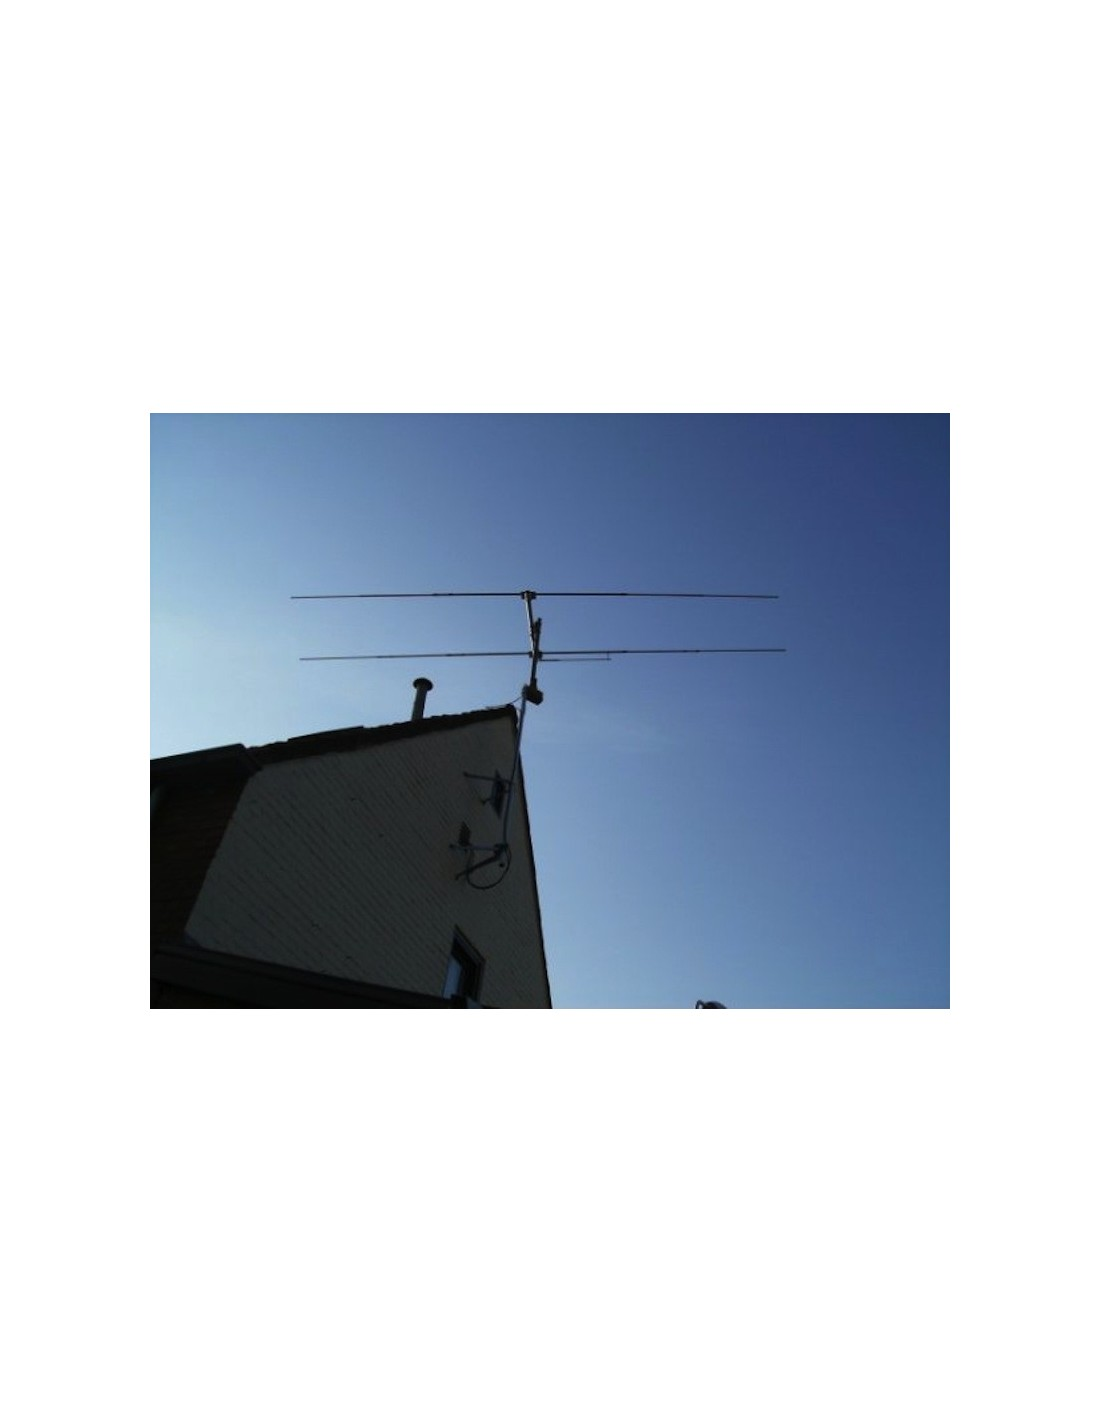 162514537879 furthermore Cb Radio Base Antennas Th furthermore Jk802 further YAGI 3 ELEMENT BASE ANTENNA UHF 450 470 MHz 311588684723 together with Incredibile Innerhofer 6c82b0f7 1dbd 4154 Be0a D19c790f8bd1. on 1dbd